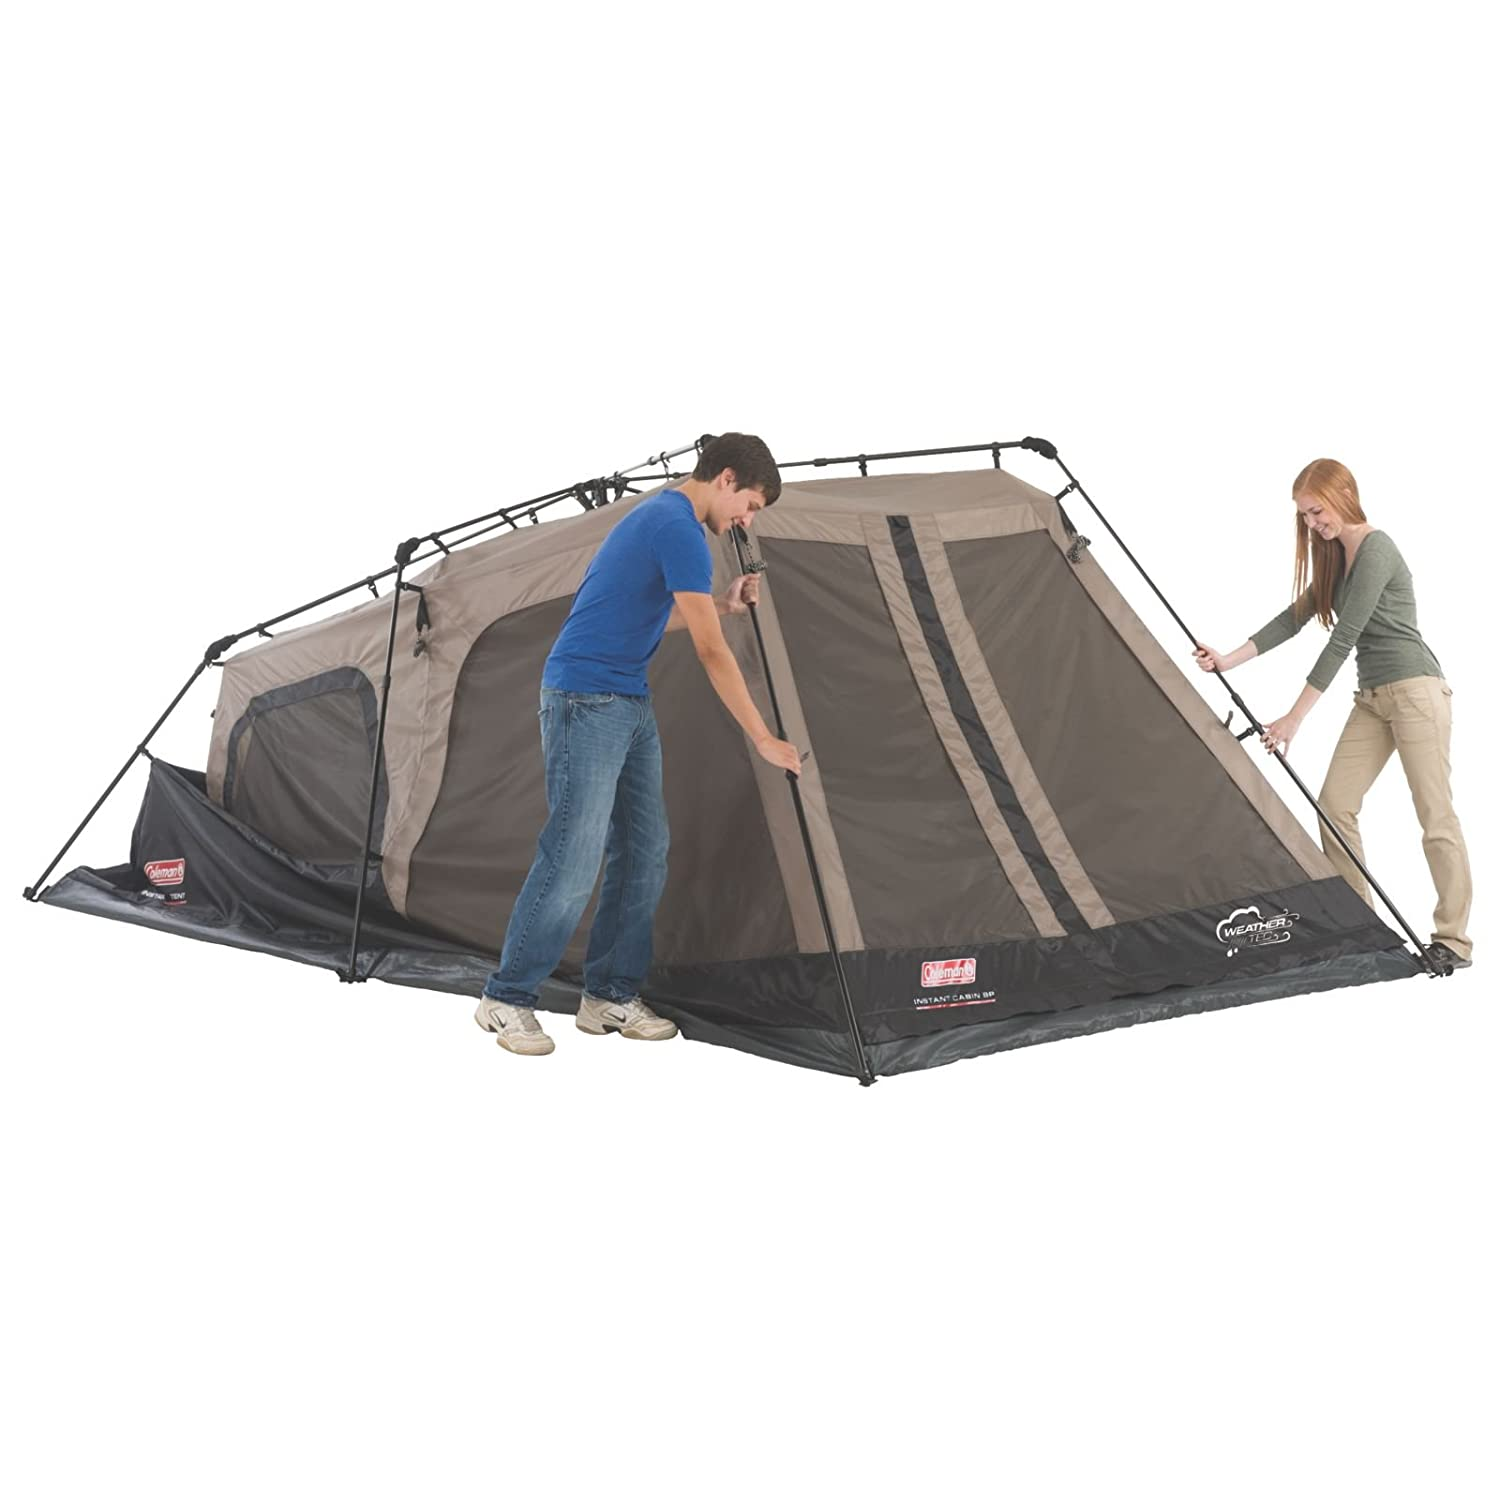 Amazon.com  Coleman 8-Person Instant Cabin  Family Tents  Sports u0026 Outdoors  sc 1 st  Amazon.com & Amazon.com : Coleman 8-Person Instant Cabin : Family Tents ...